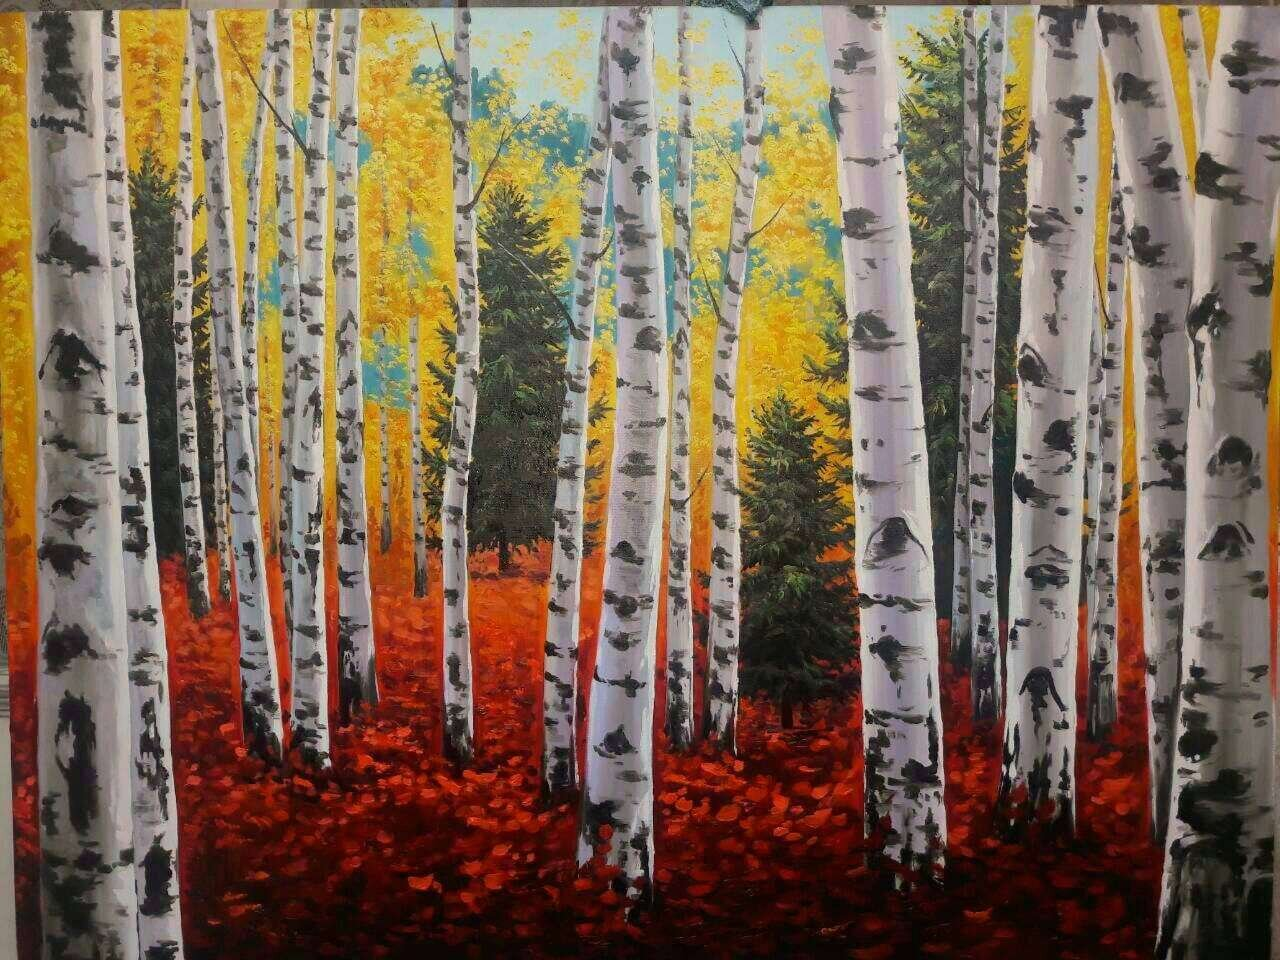 Autumn Birch Oil Painting Made to Order. CUSTOM CUSTOM Get yours today. All sizes available. Wall art. Home decor. Landscape oil painting